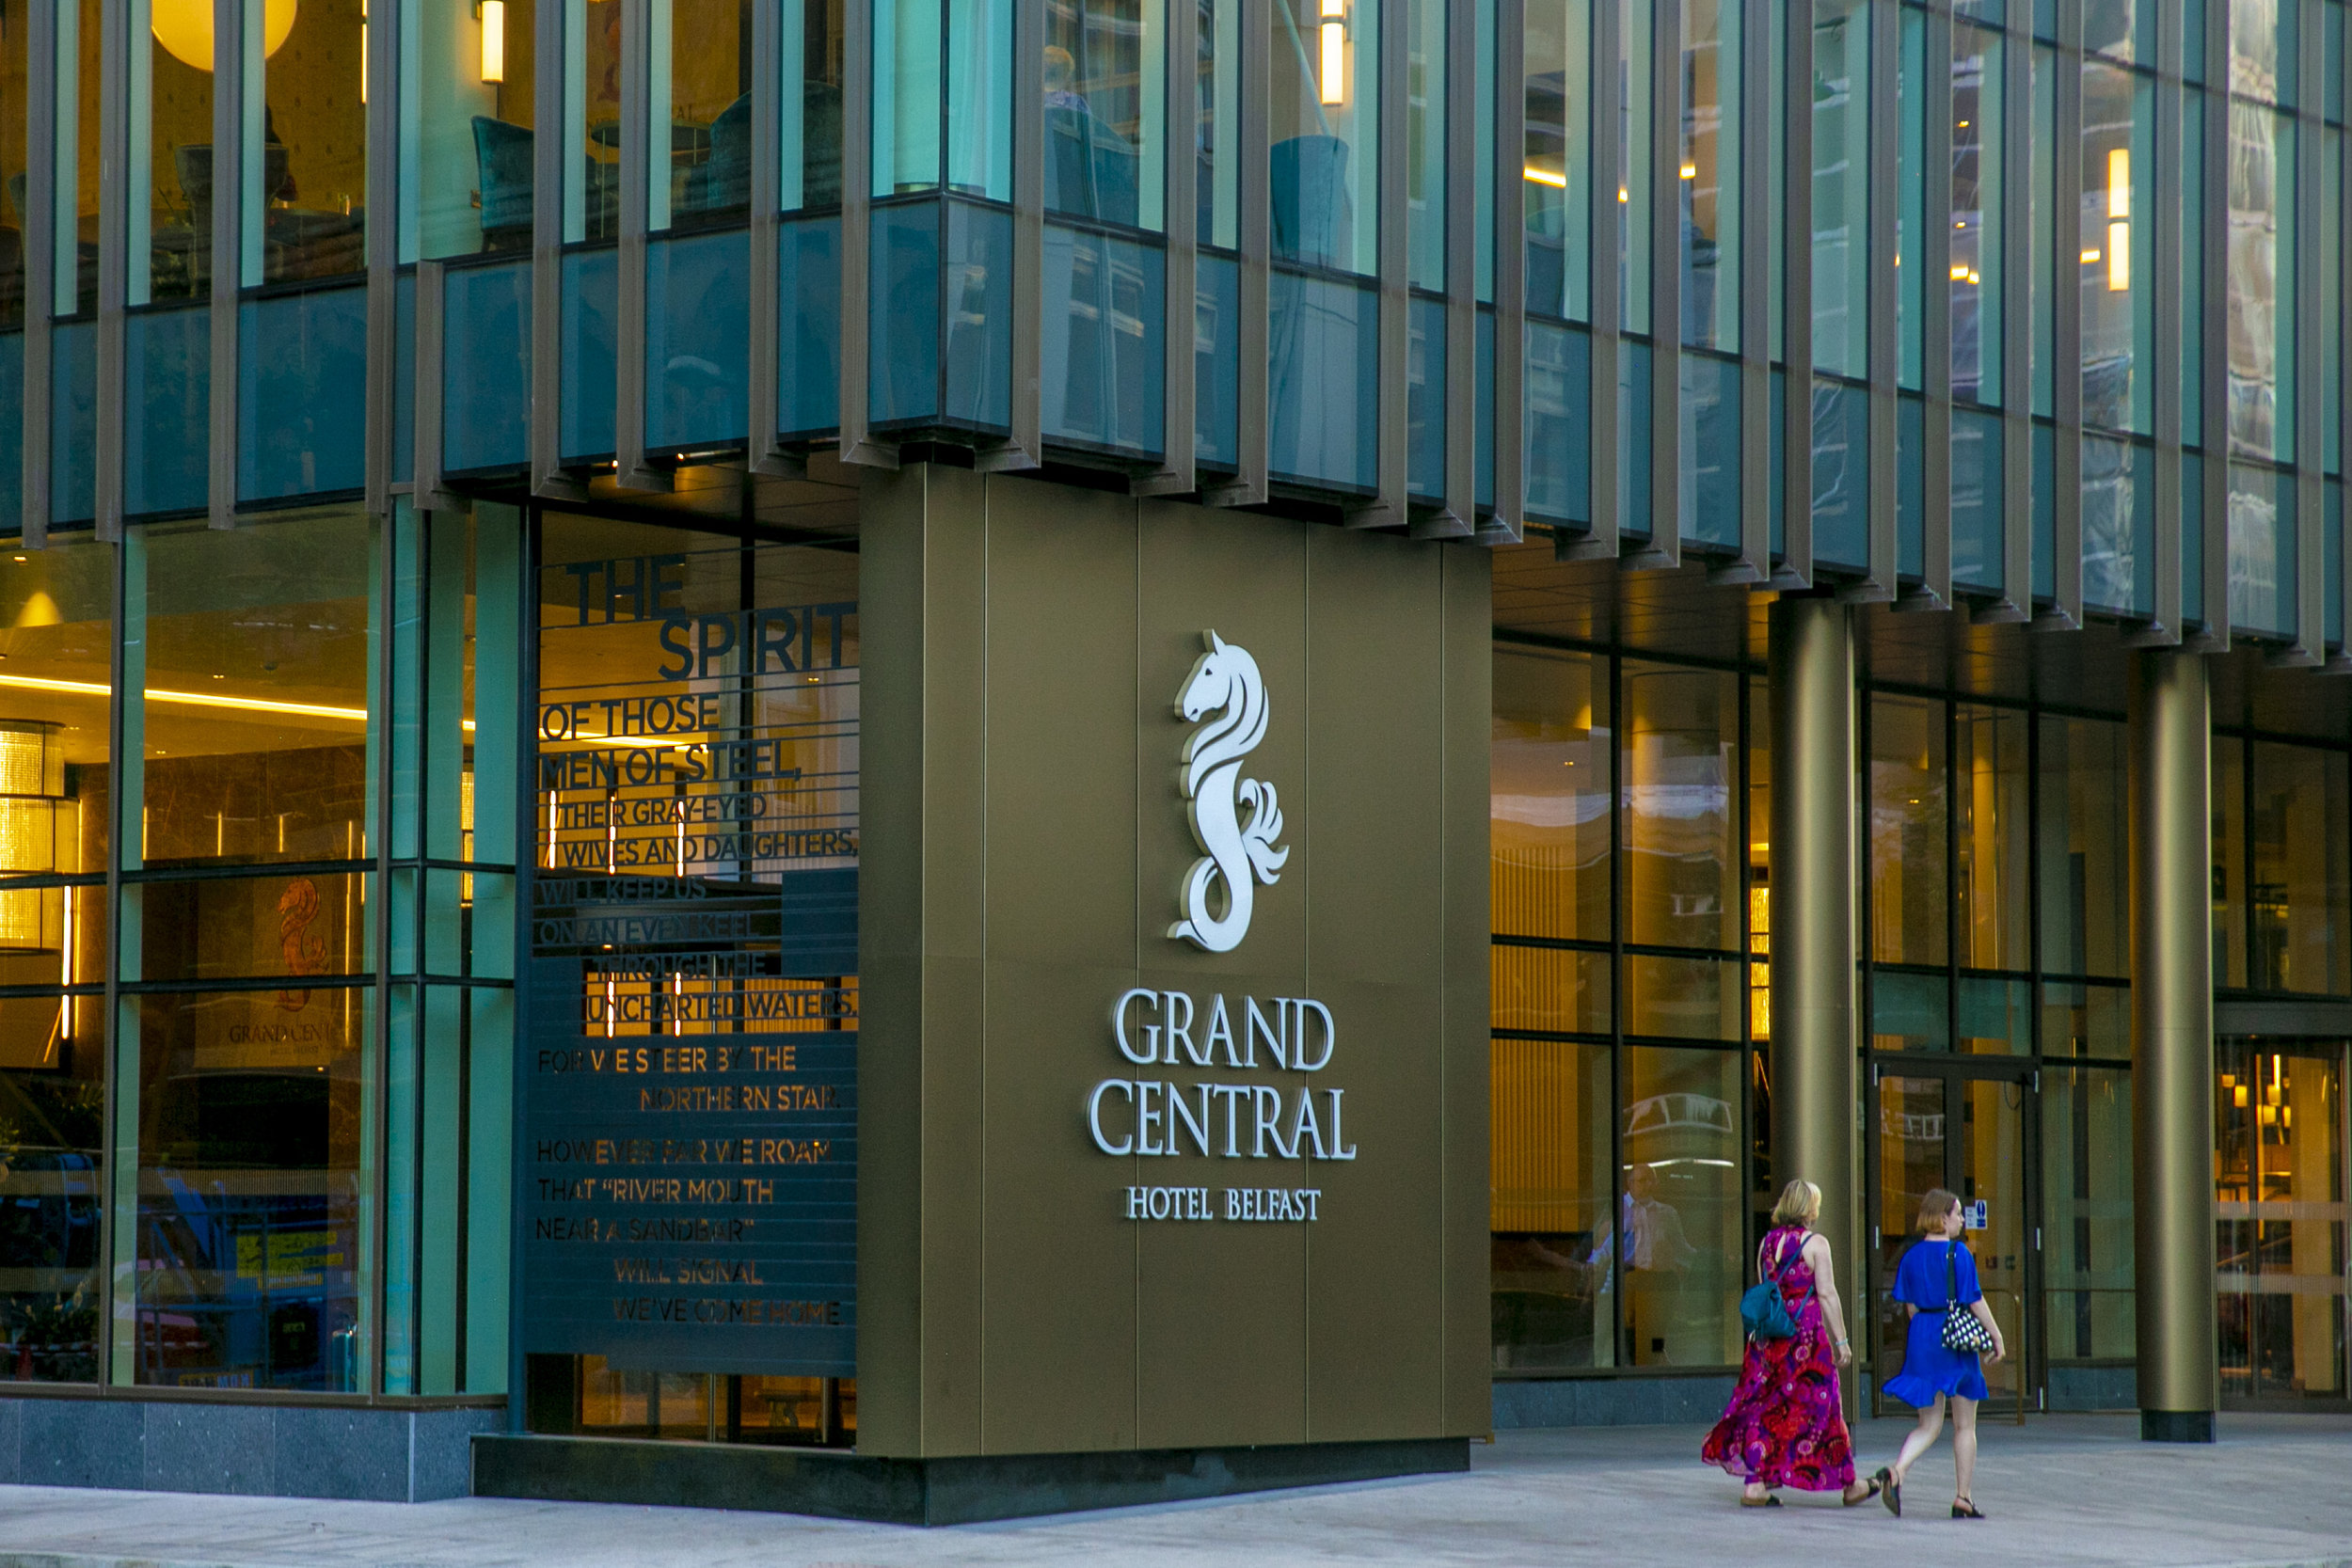 Grand Central - September saw the opening of Belfast's newest (and tallest) hotel, the Grand Central. To tell the incredible story of Belfast, past and present, we looked to Pulitzer Prize winner, Paul Muldoon for help.